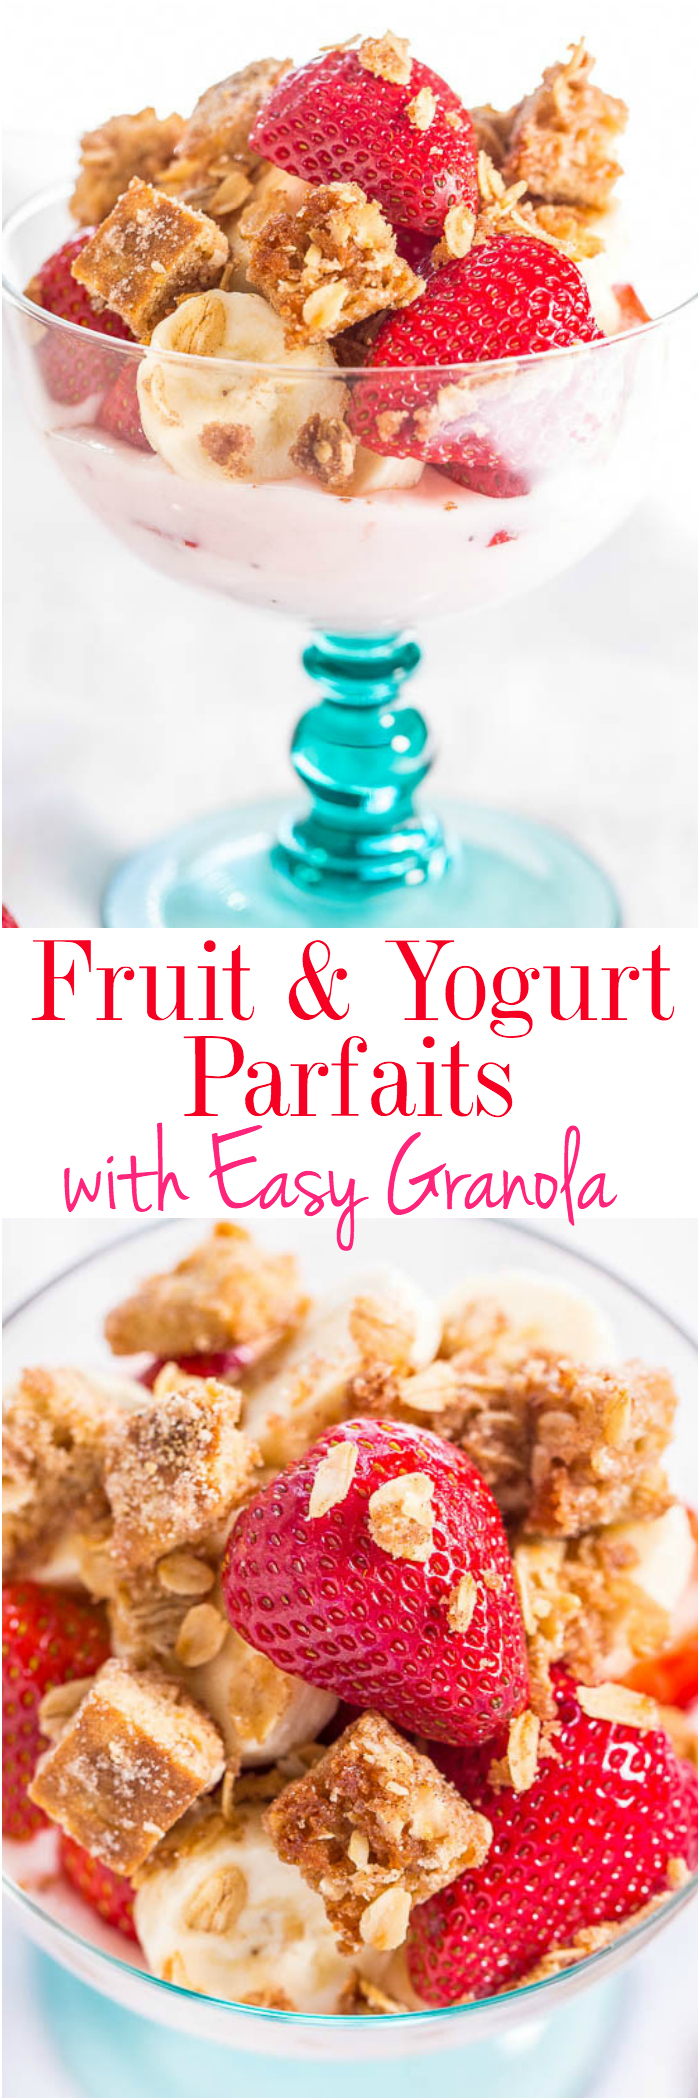 Fruit and Yogurt Parfaits with Easy Granola - Make your own healthy breakfast or snack in 15 minutes with lightened-up granola that's so good!! Bikini-friendly with almost no sugar and uses naturally sweet fruit!!